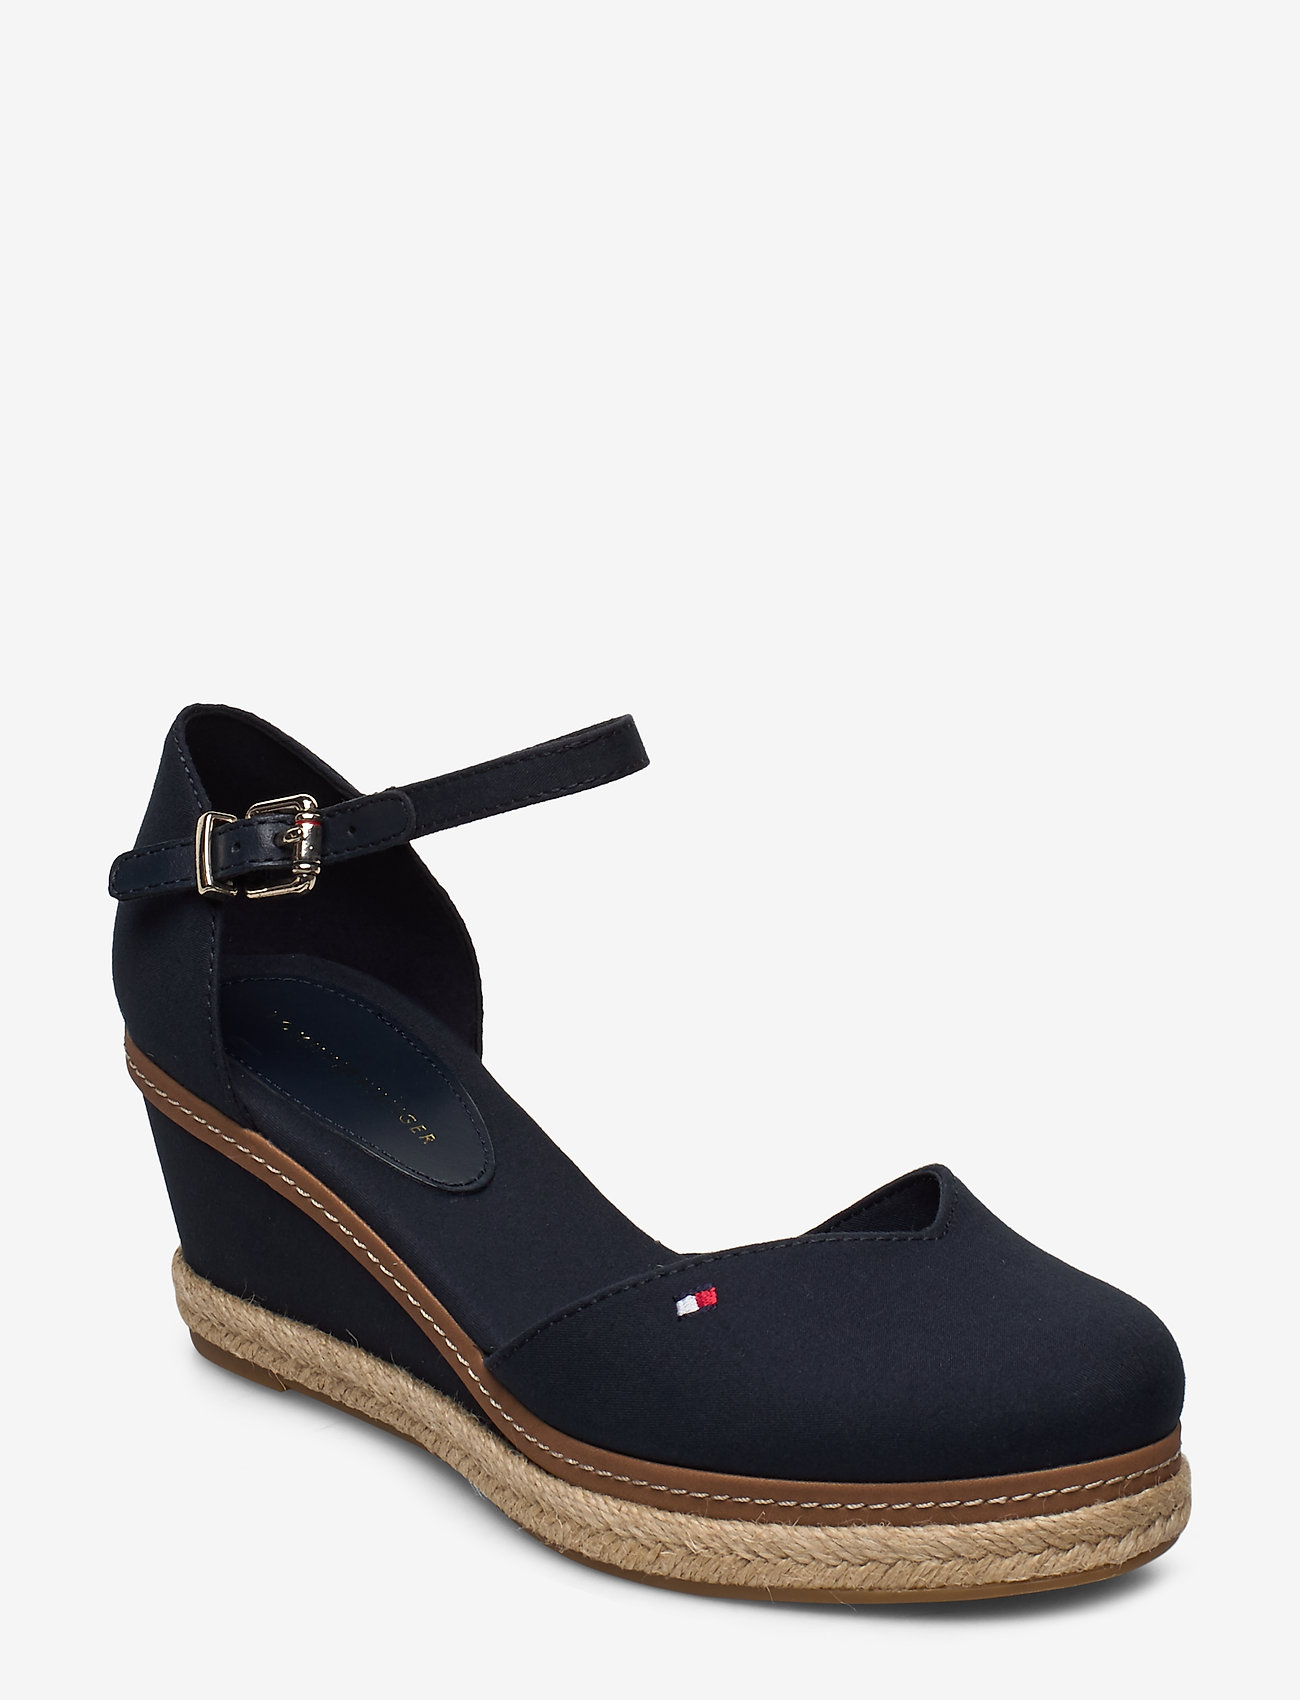 Tommy Hilfiger - BASIC CLOSED TOE MID WEDGE - wedges - desert sky - 0